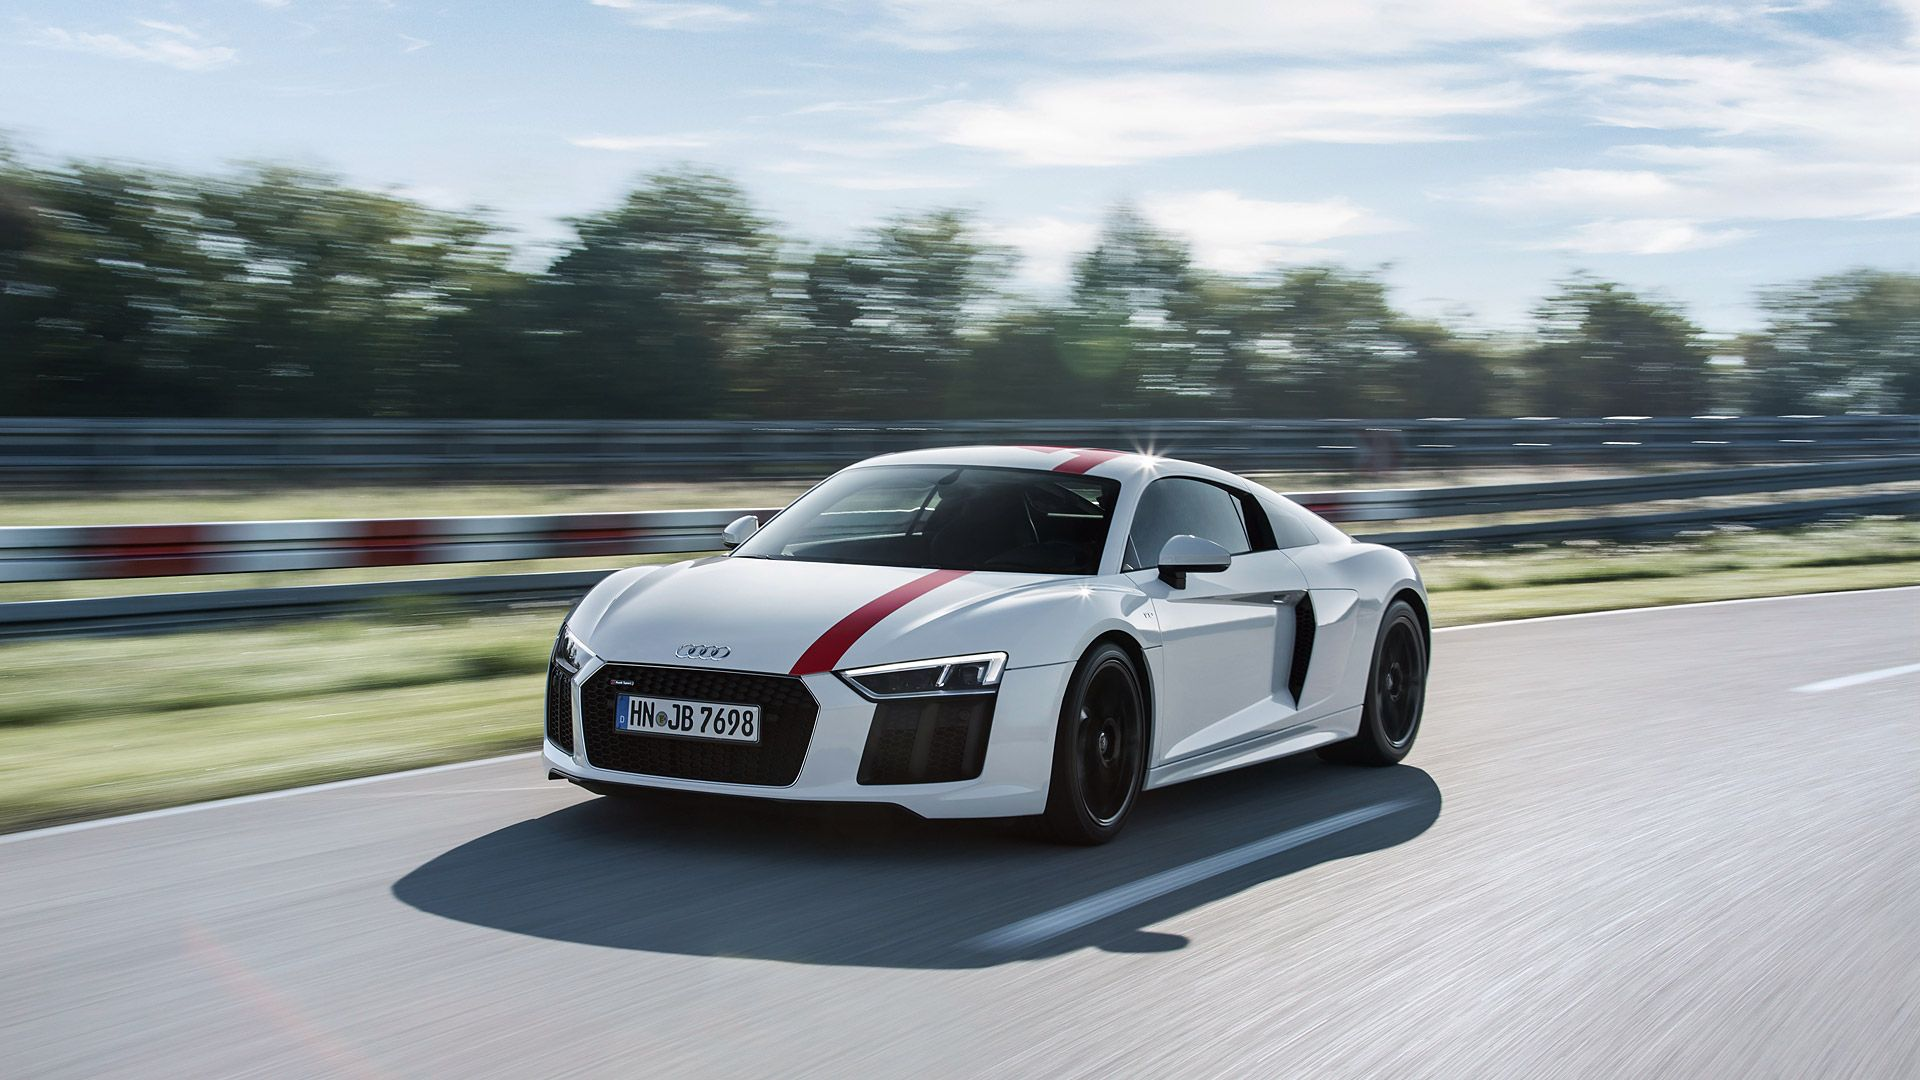 1920x1080 2018 Audi R8 V10 RWS Wallpapers & HD Images - WSupercars